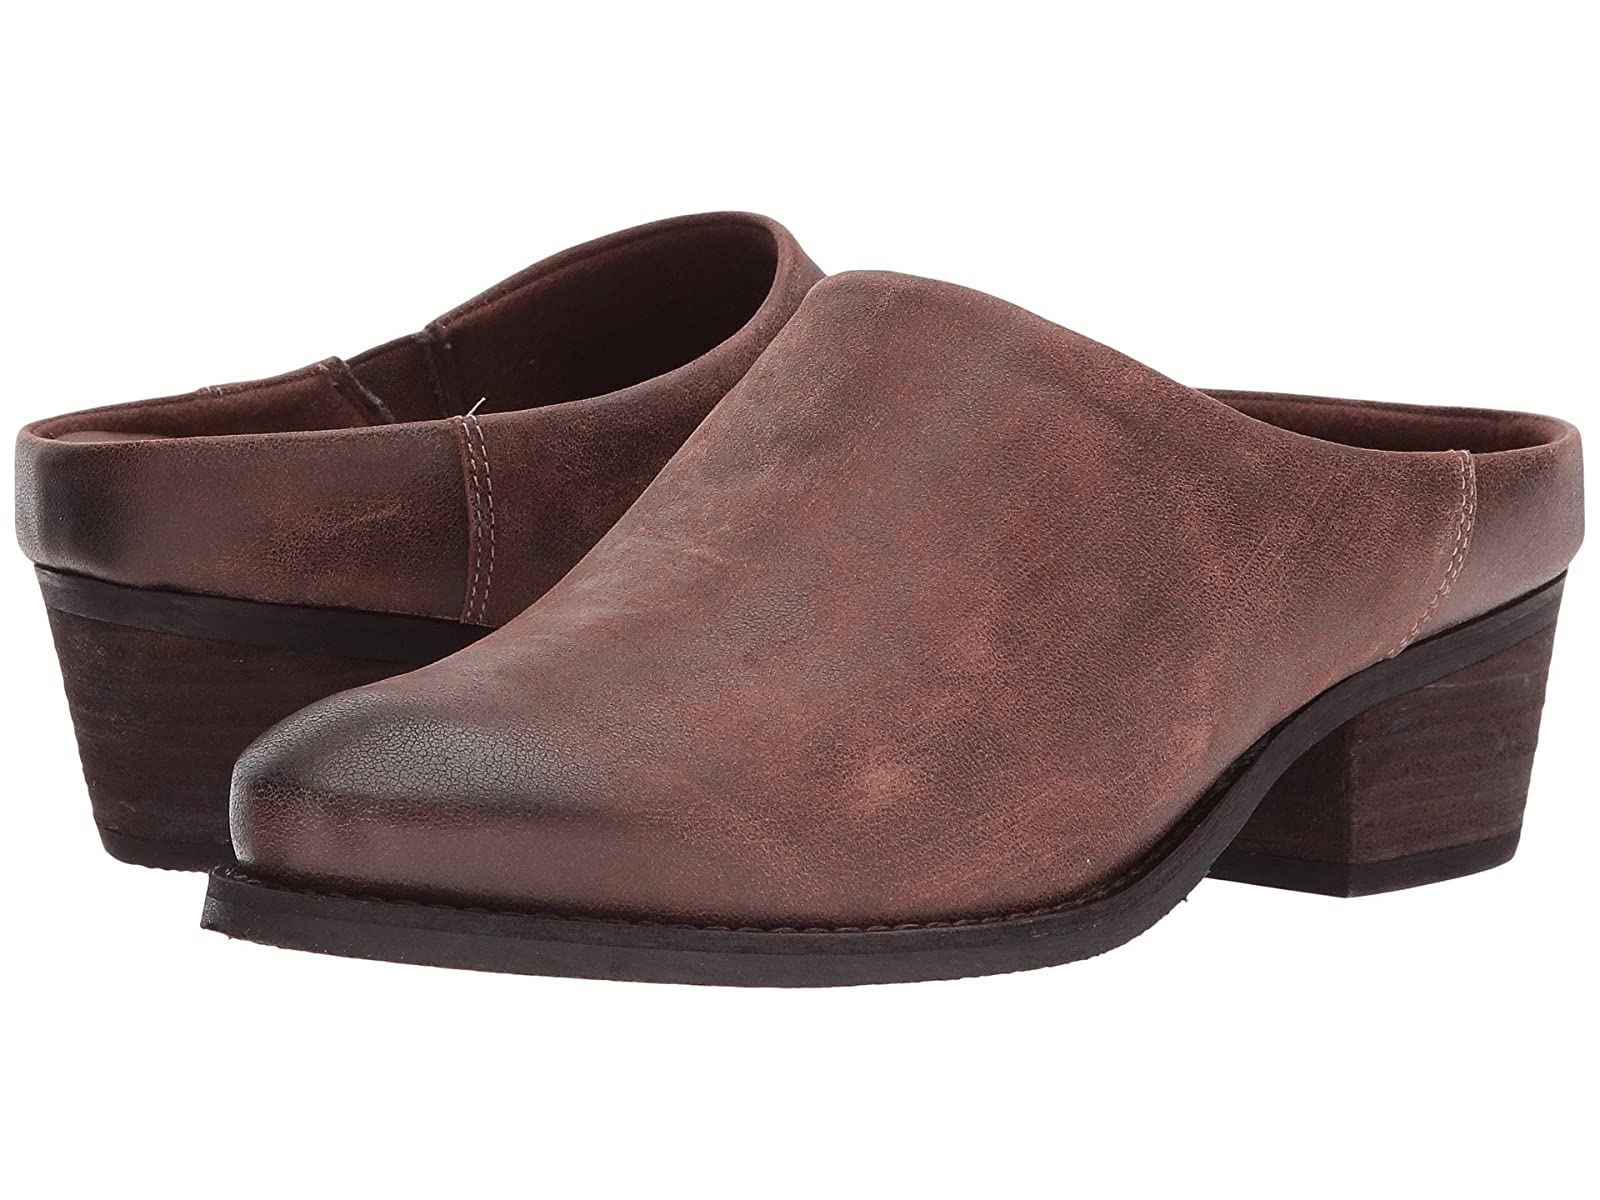 Walking Cradles GreerCheap and distinctive eye-catching shoes